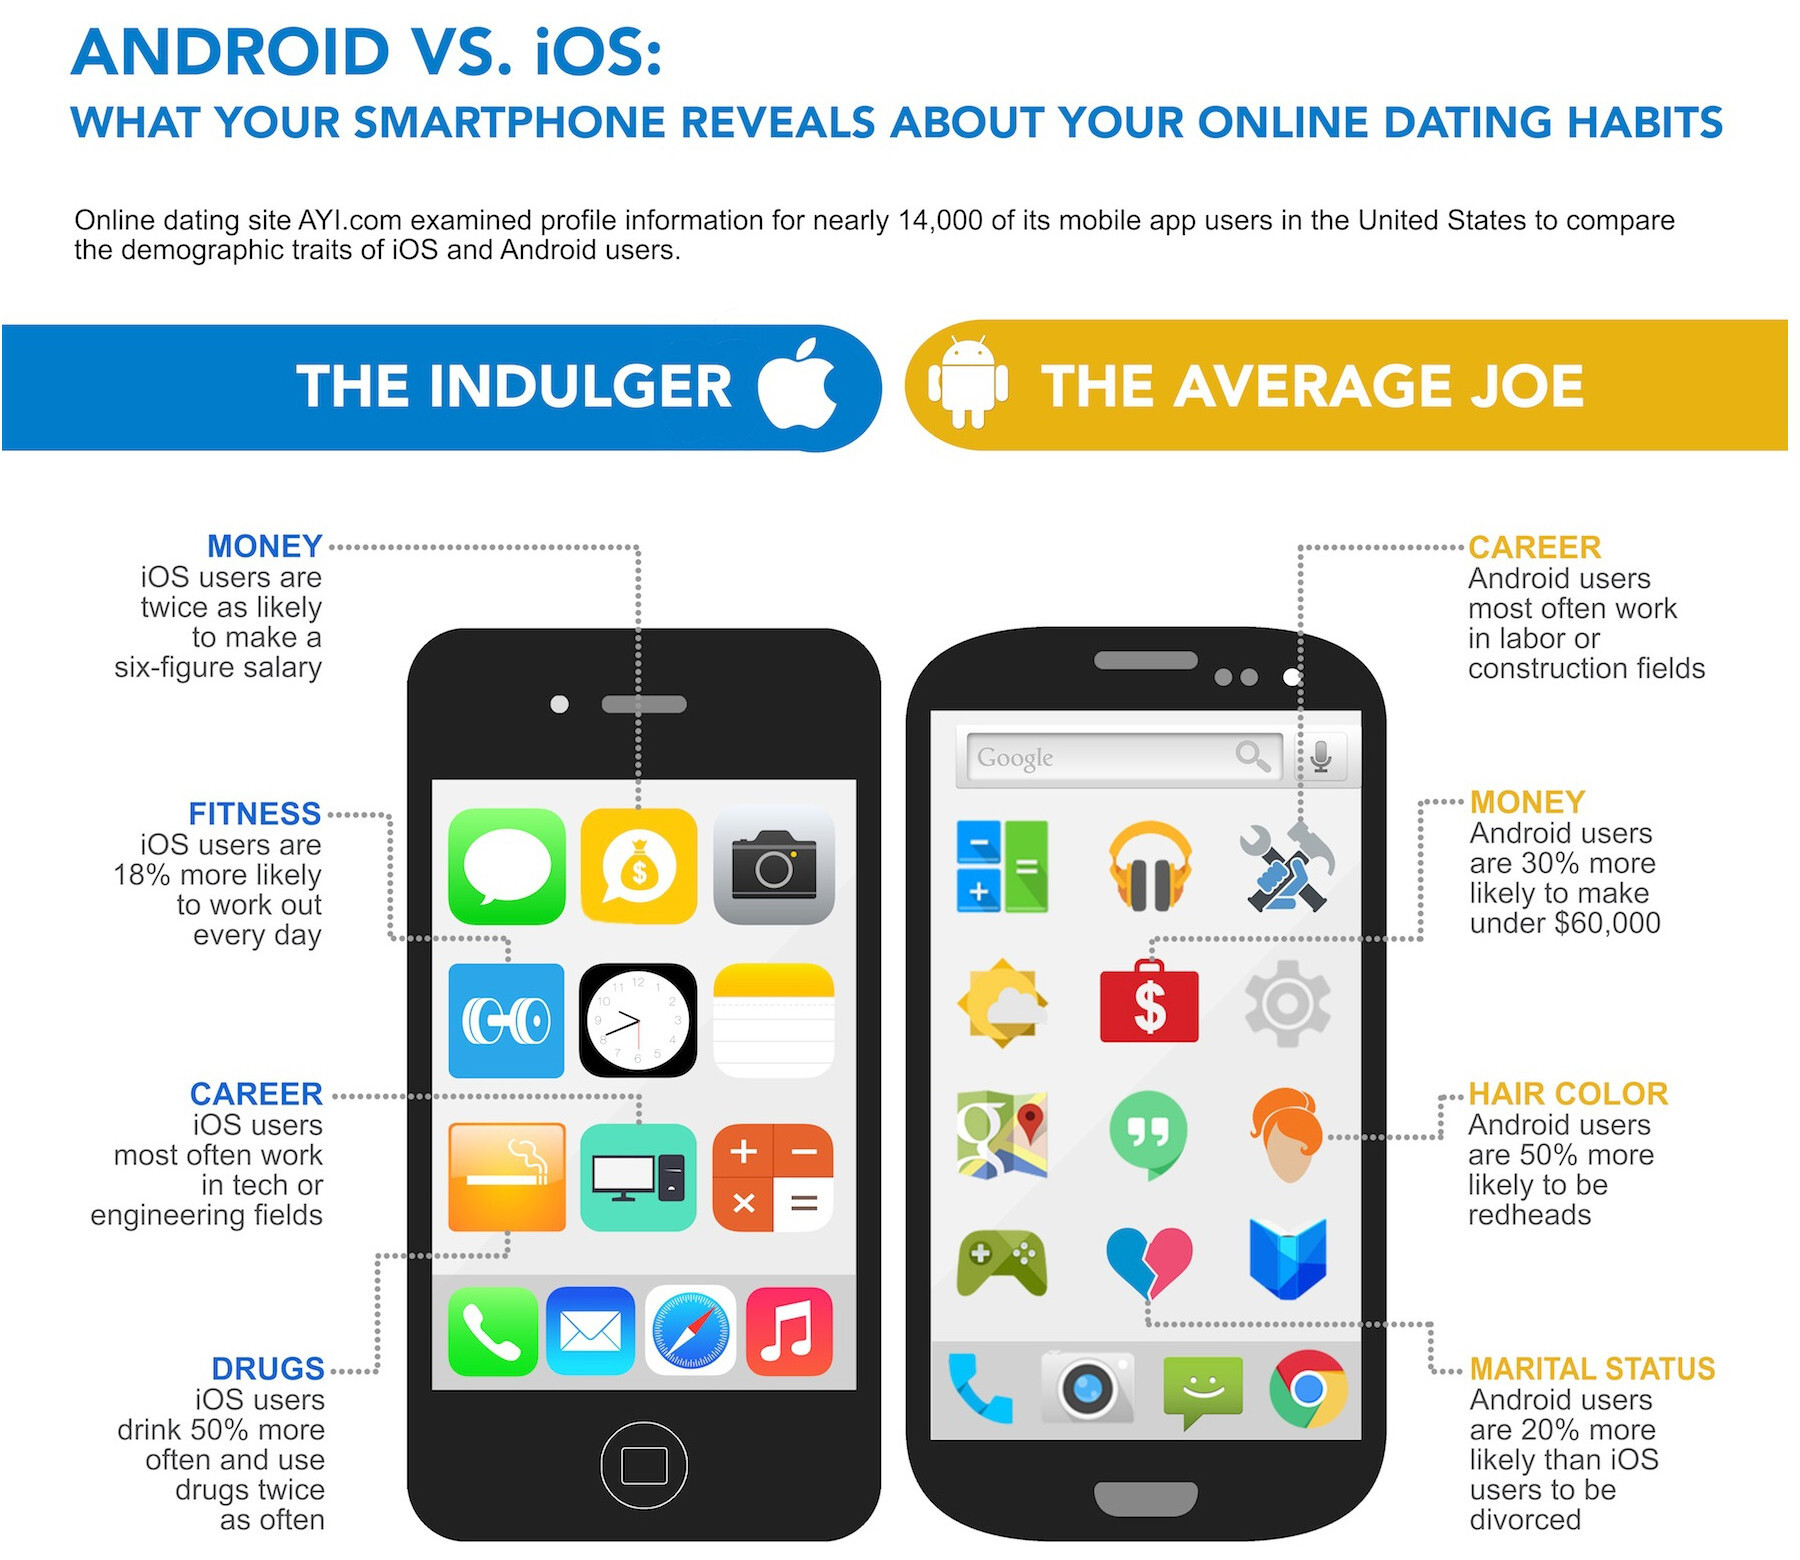 Phone Iphones Compared To Android Phones android users more promiscuous while iphone fans educated survey says